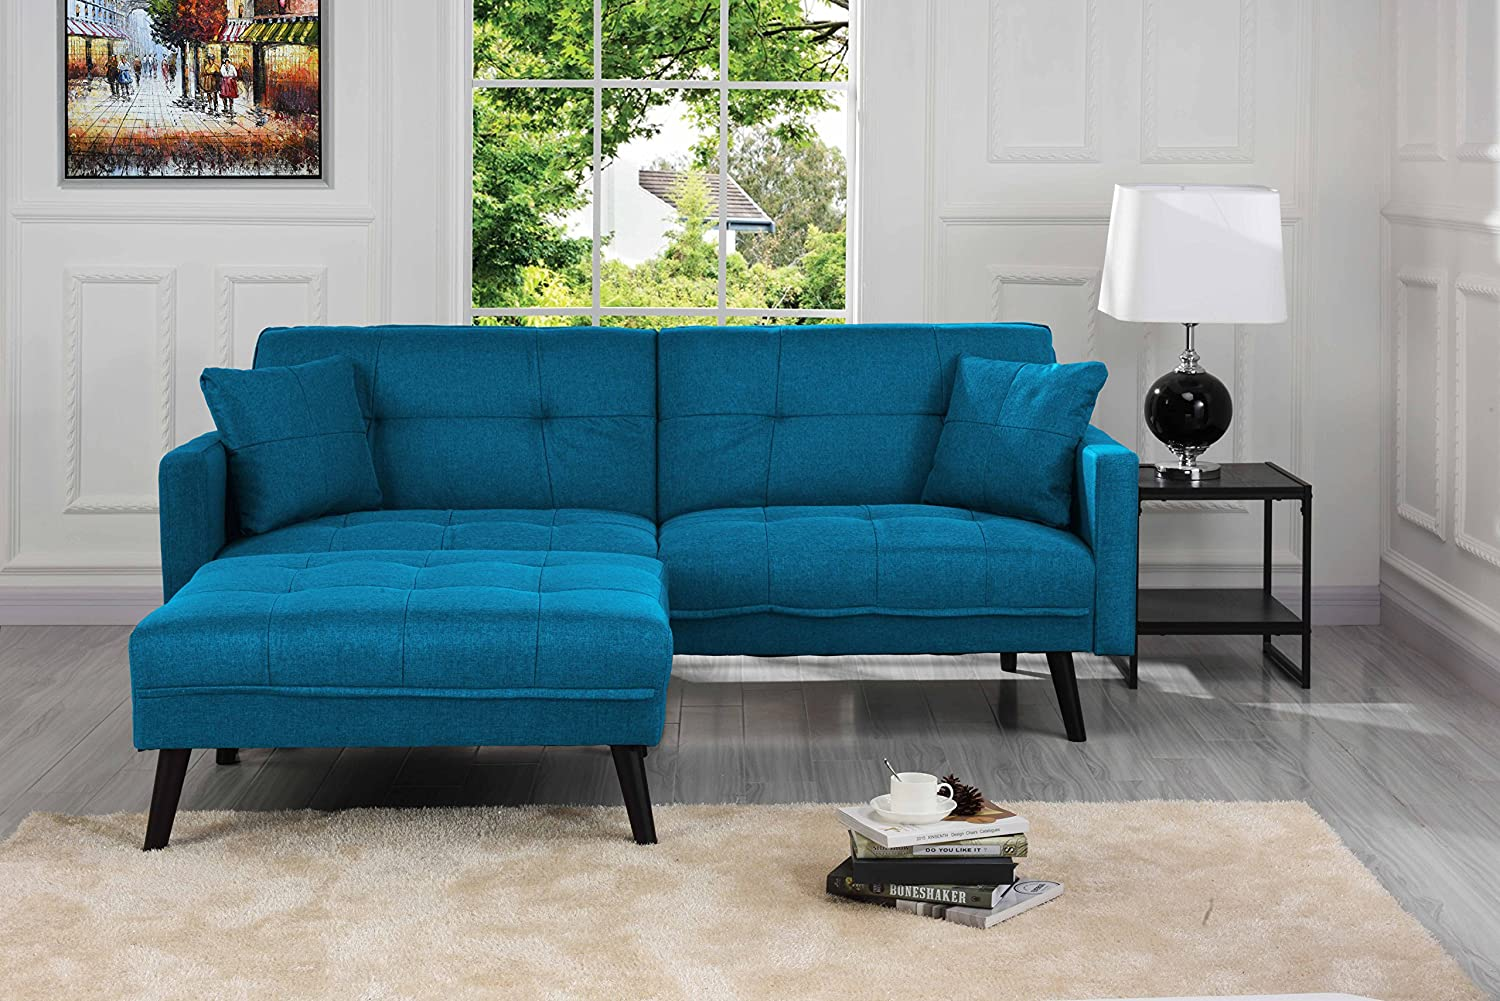 Mid Century Modern Linen Fabric Futon Sofa Bed, Living Room Sleeper Couch (Blue) by Sofamania